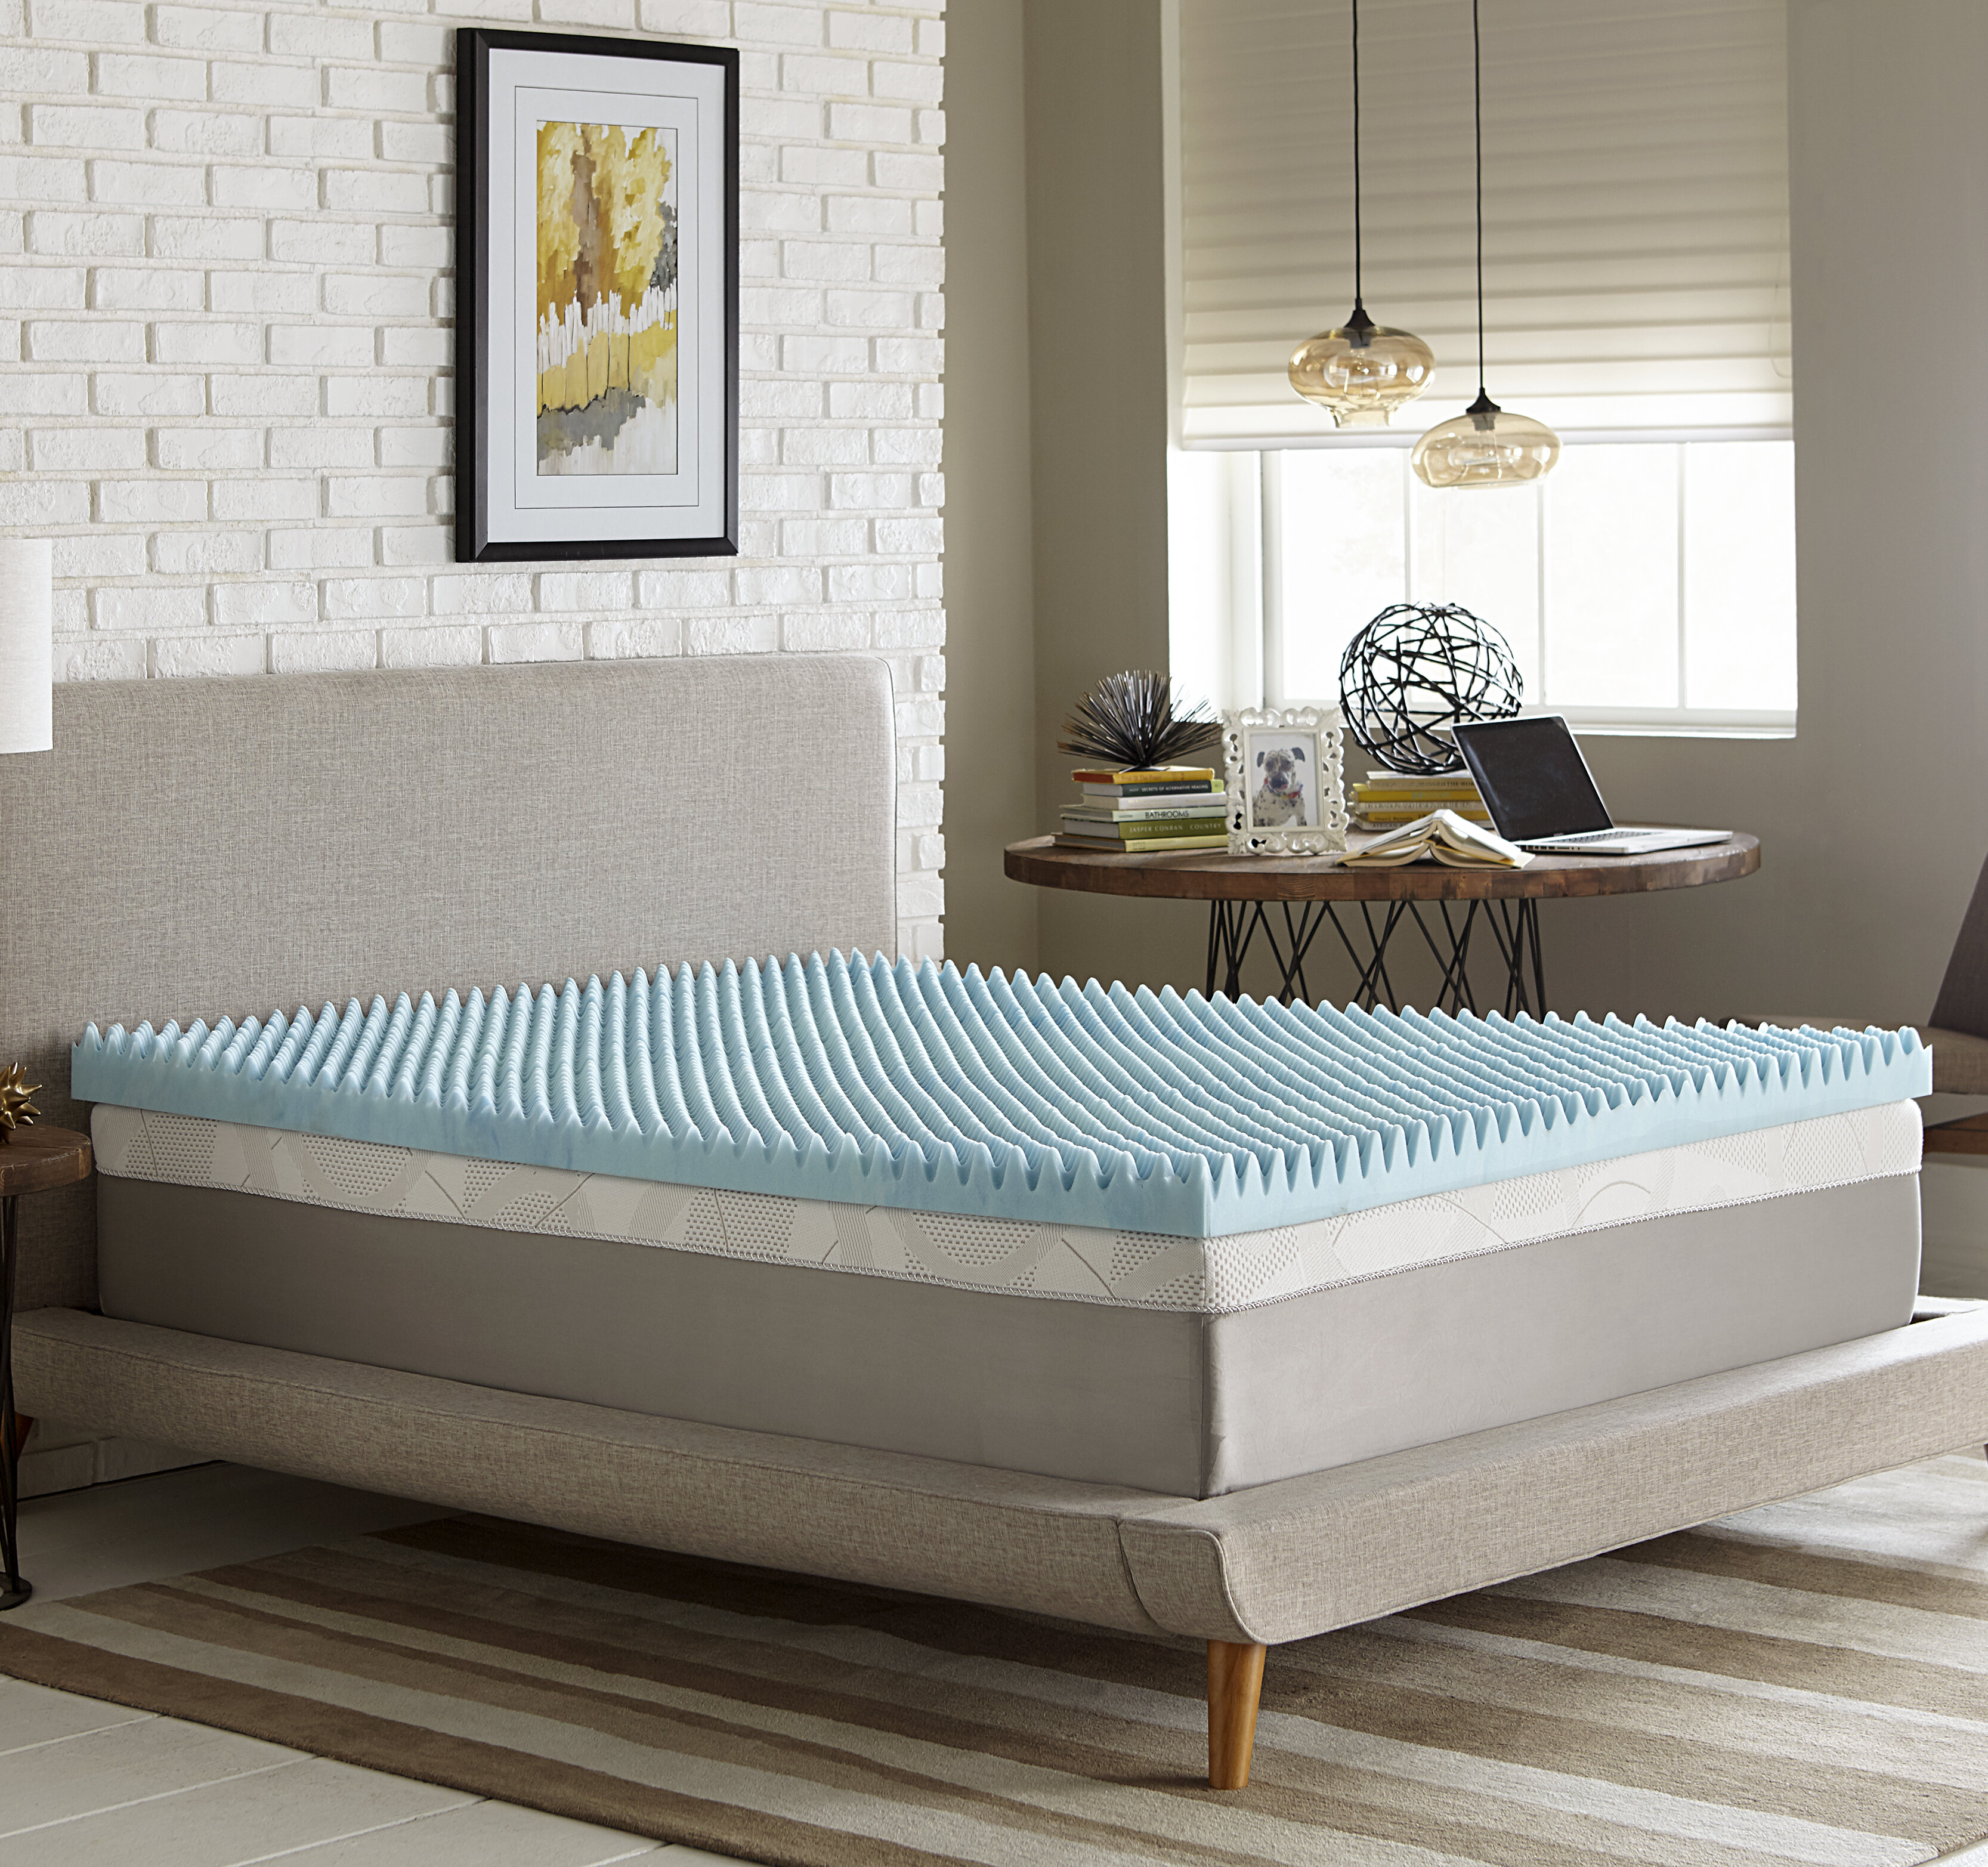 bath inch loft free size foam bedding gel mattress dorm topper twin today memory comforpedic beautyrest shipping textured xl from overstock product